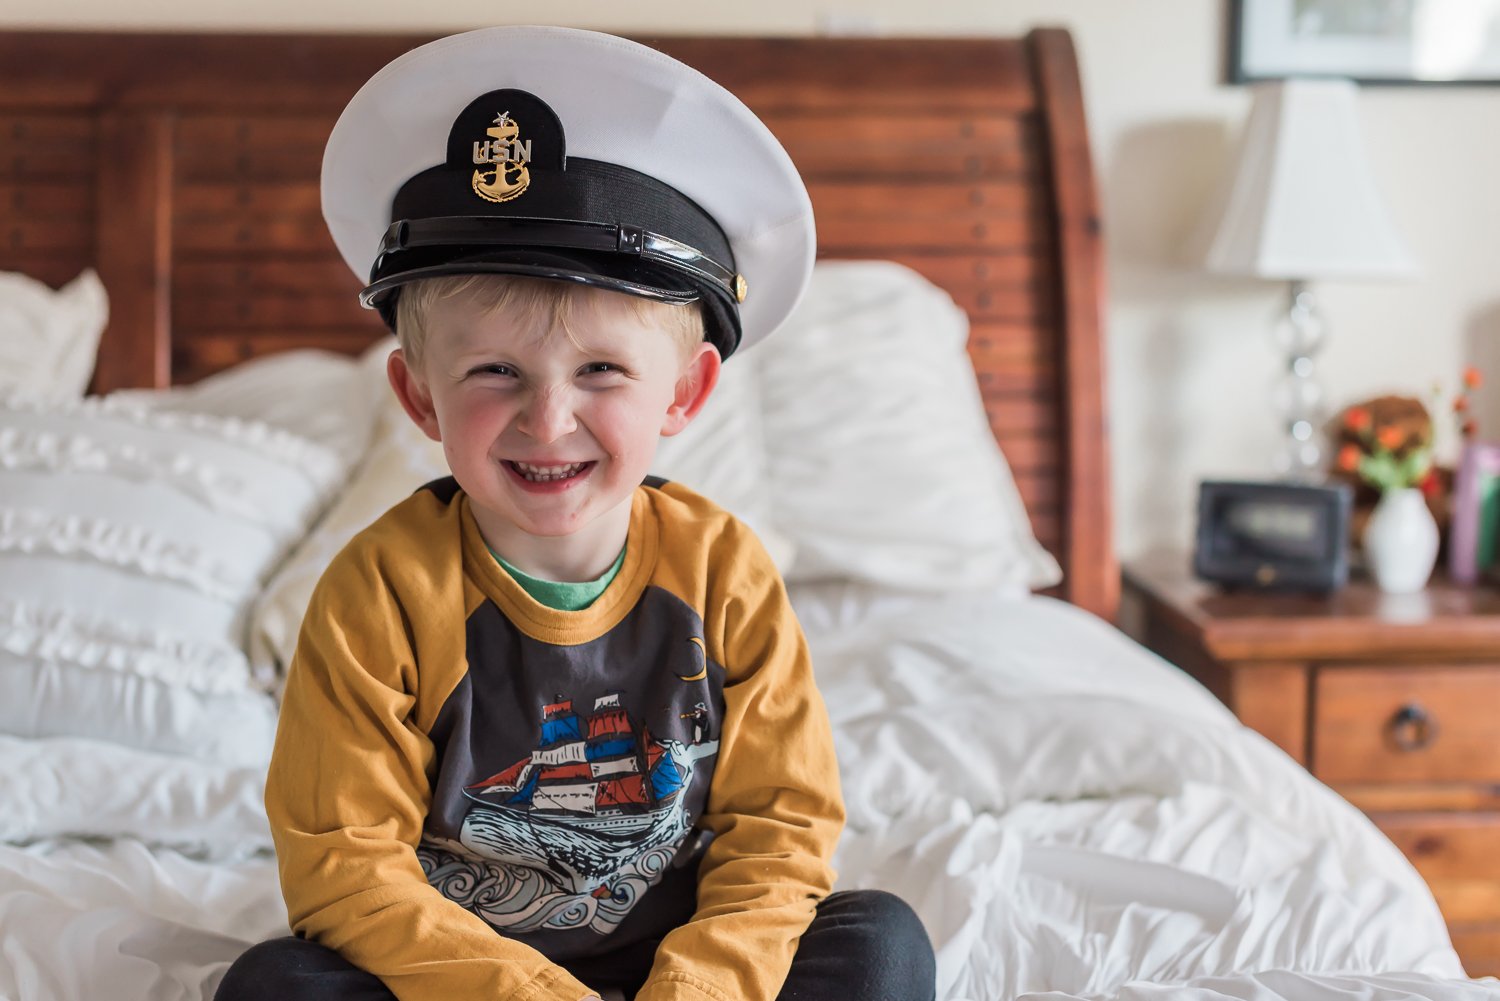 start strong stay strong boy in dress uniform hat